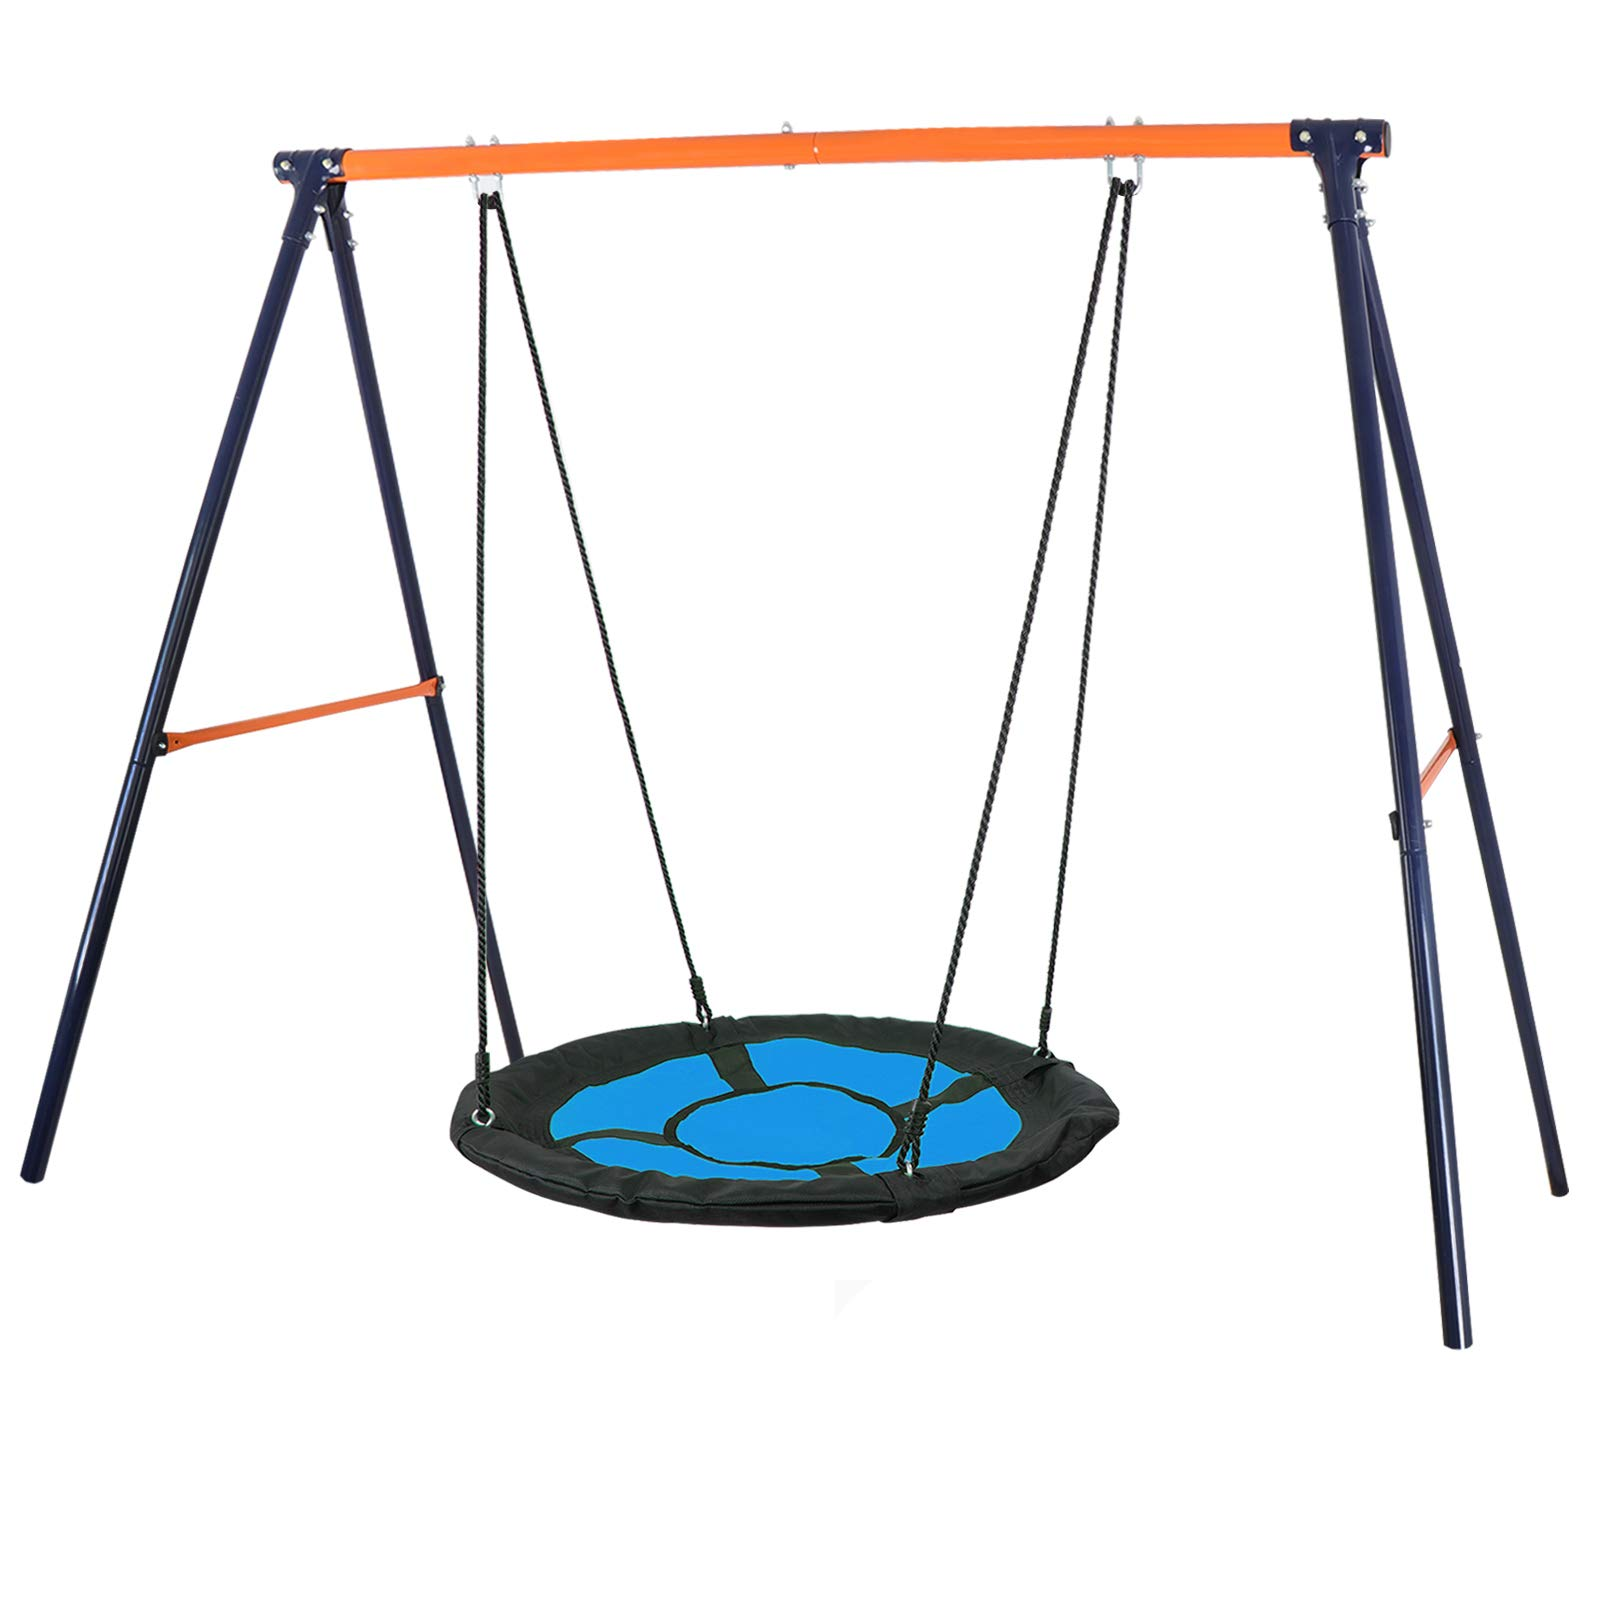 SUPER DEAL Swing Set, 40'' Kids Web Tree Swing Saucer Swing + 72'' All-Steel All Weather Stand Combo (Blue, XXL)